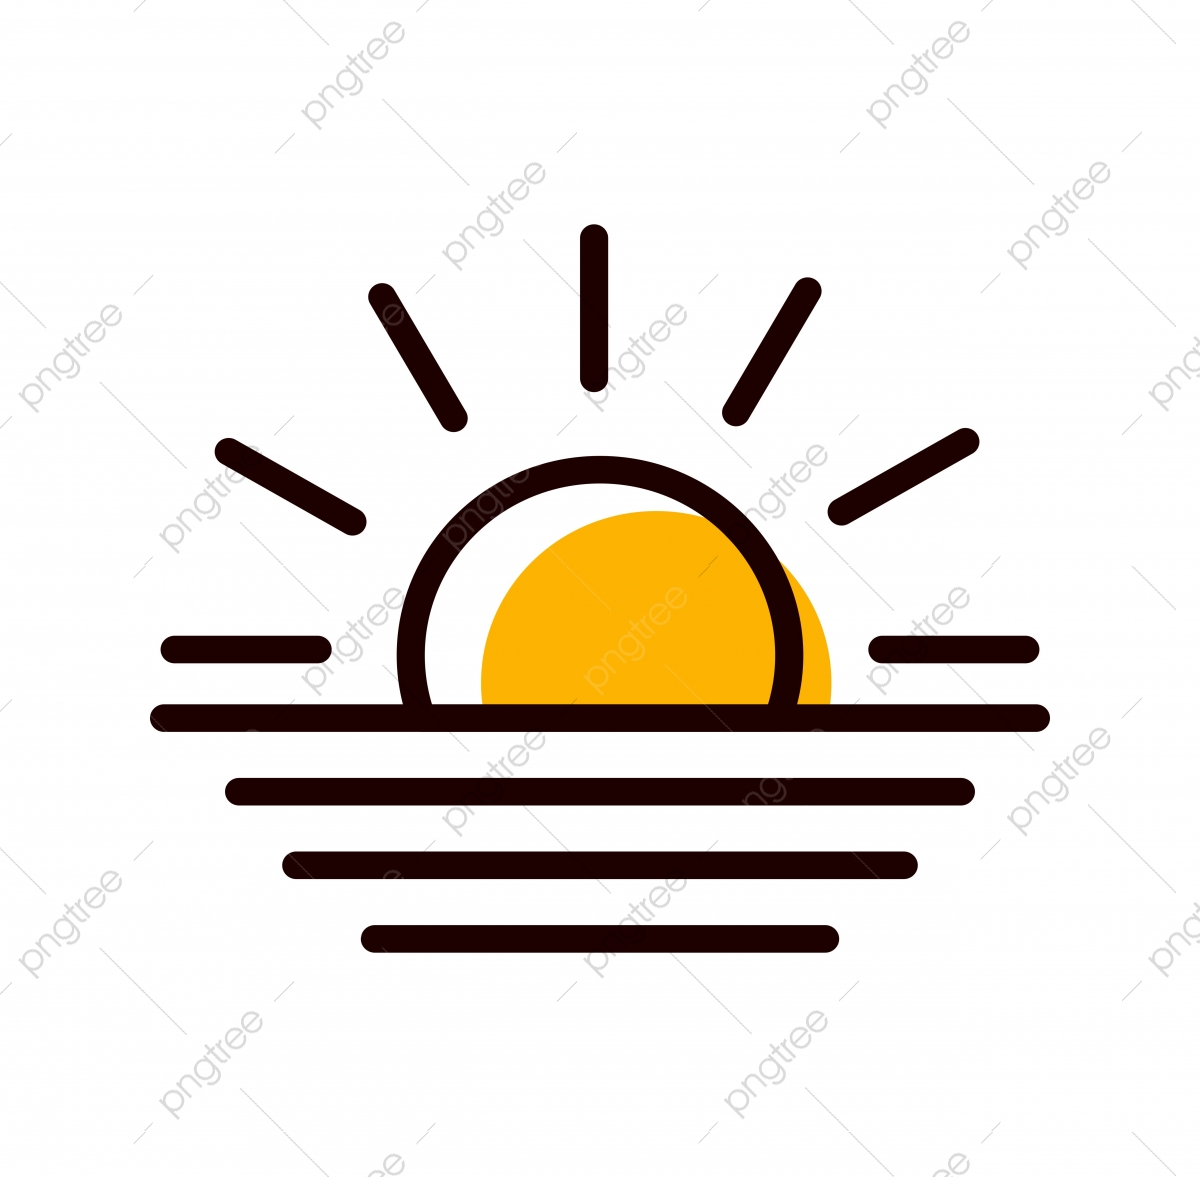 sunset icon png vector psd and clipart with transparent background for free download pngtree https pngtree com freepng sunset icon design 4816805 html